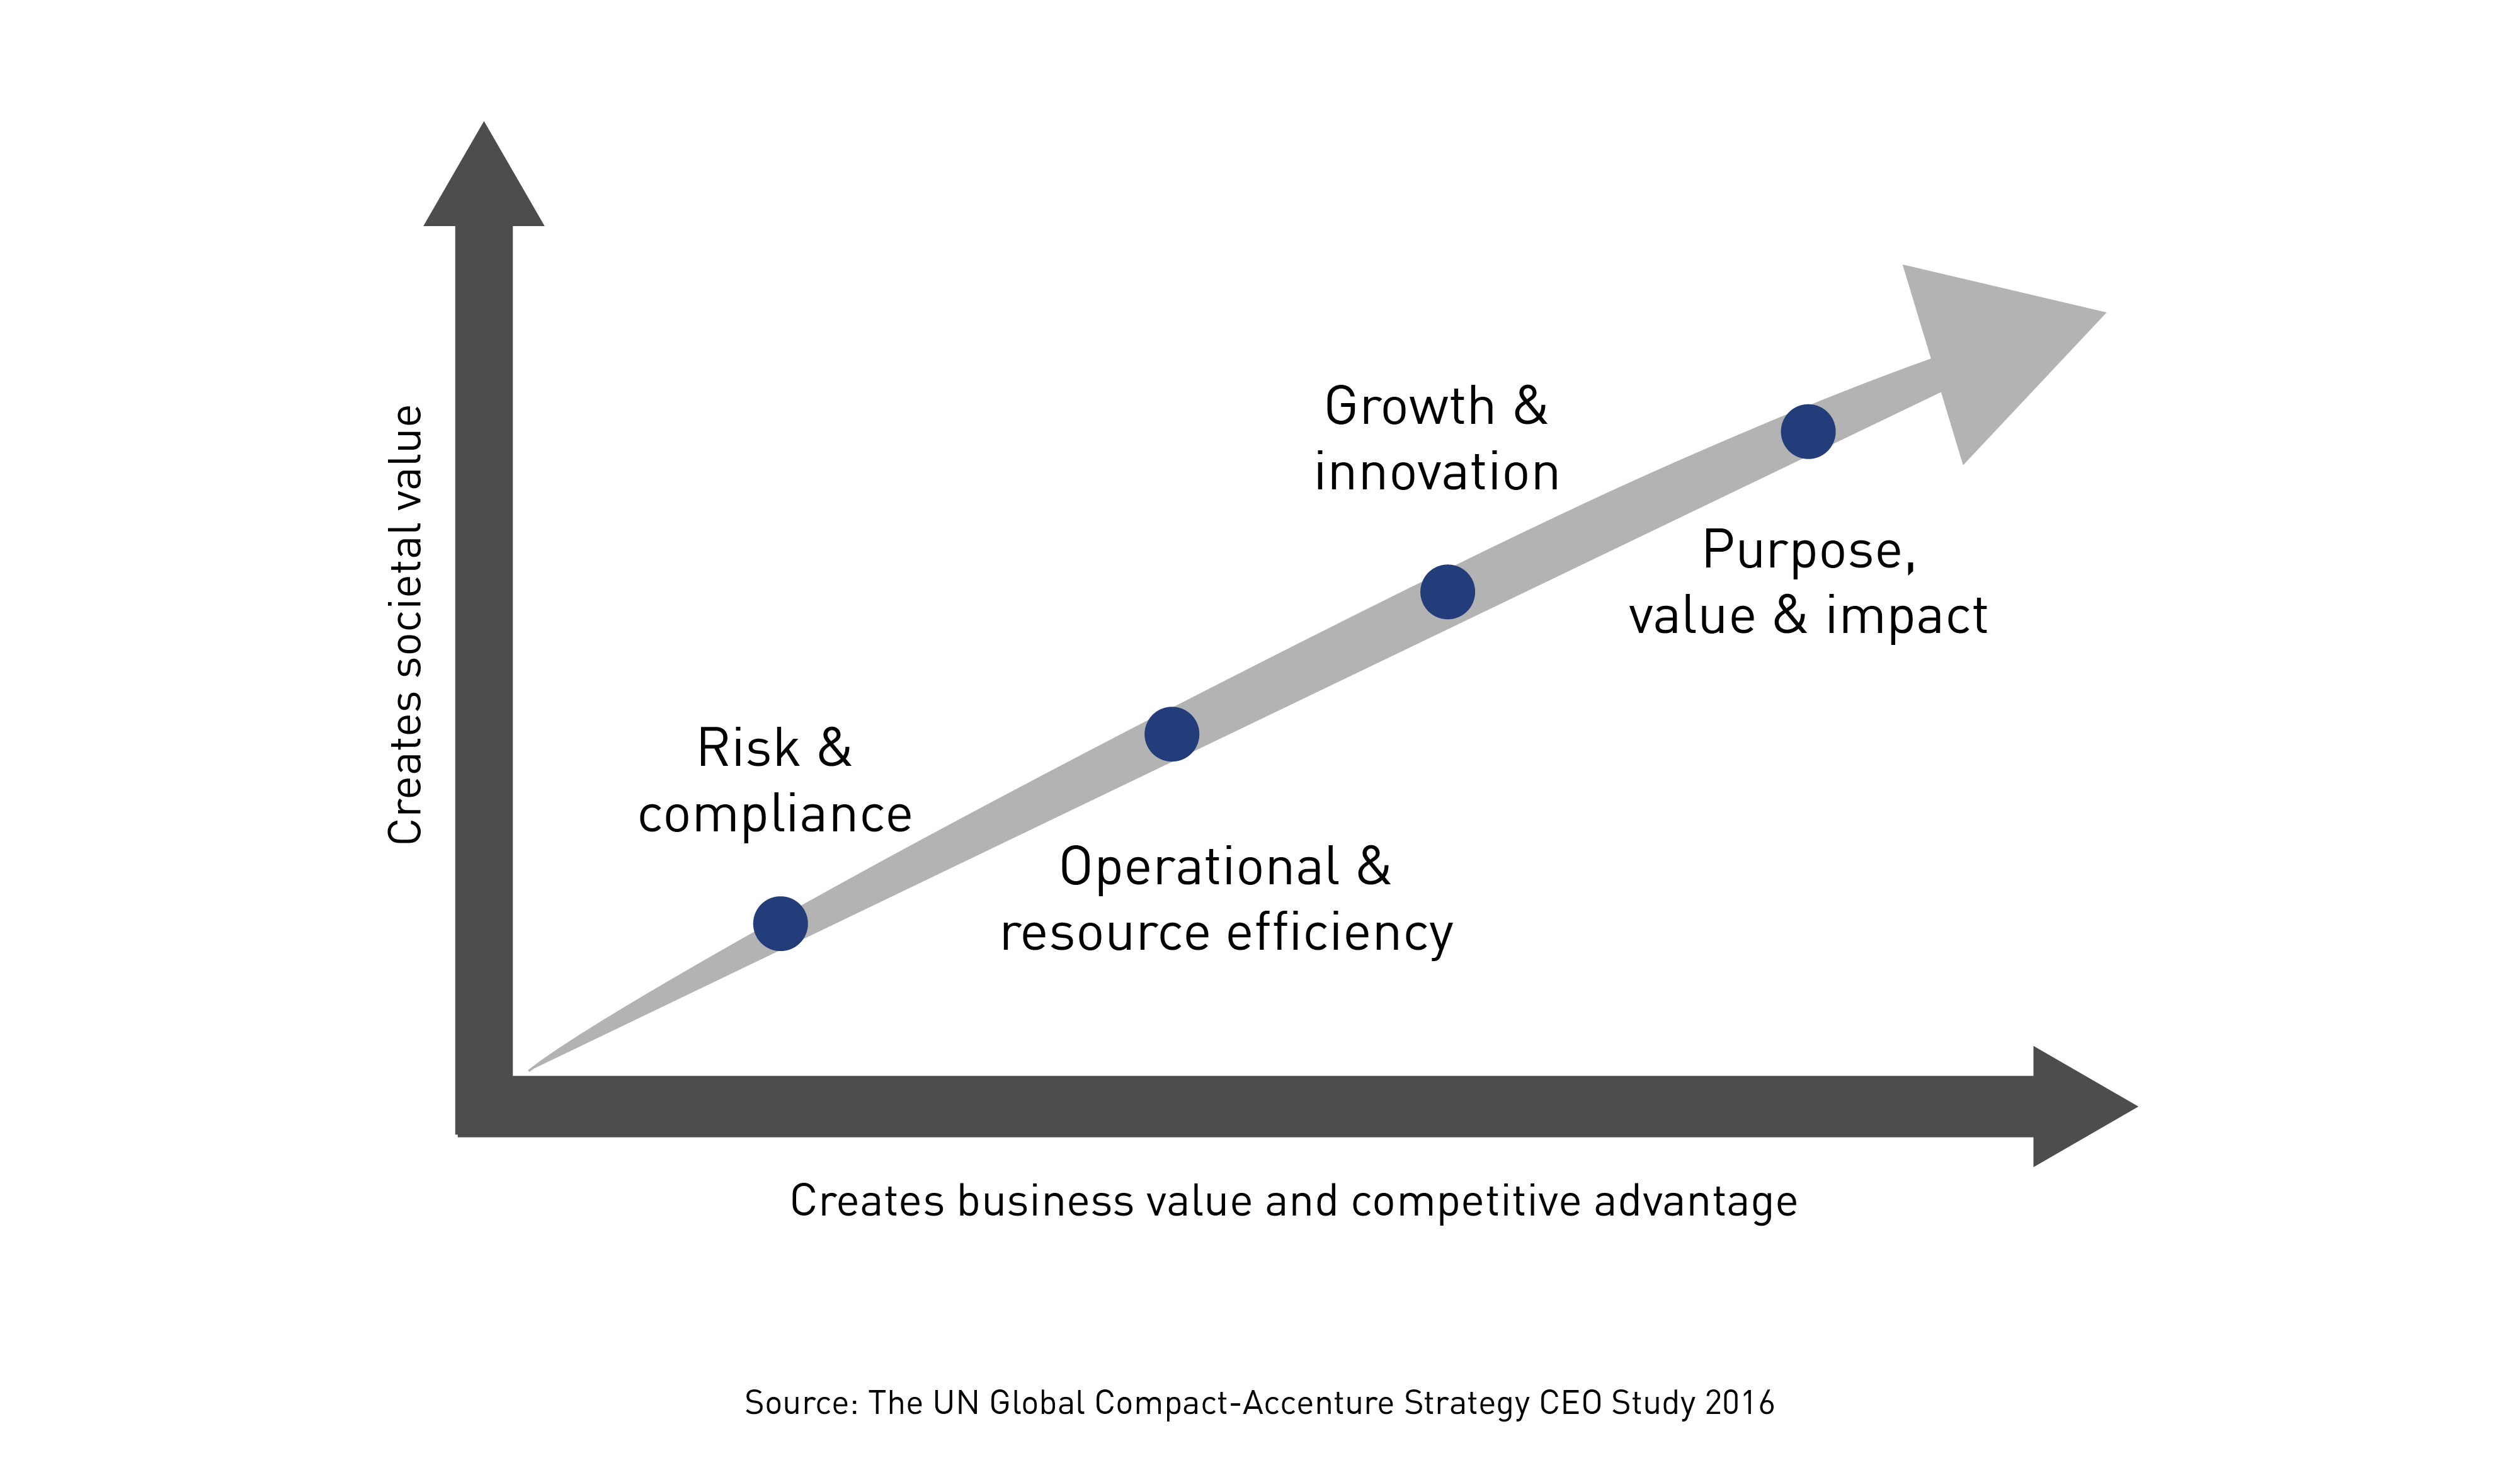 Source: The UN Global Compact-Accenture Strategy CEO Study 2016